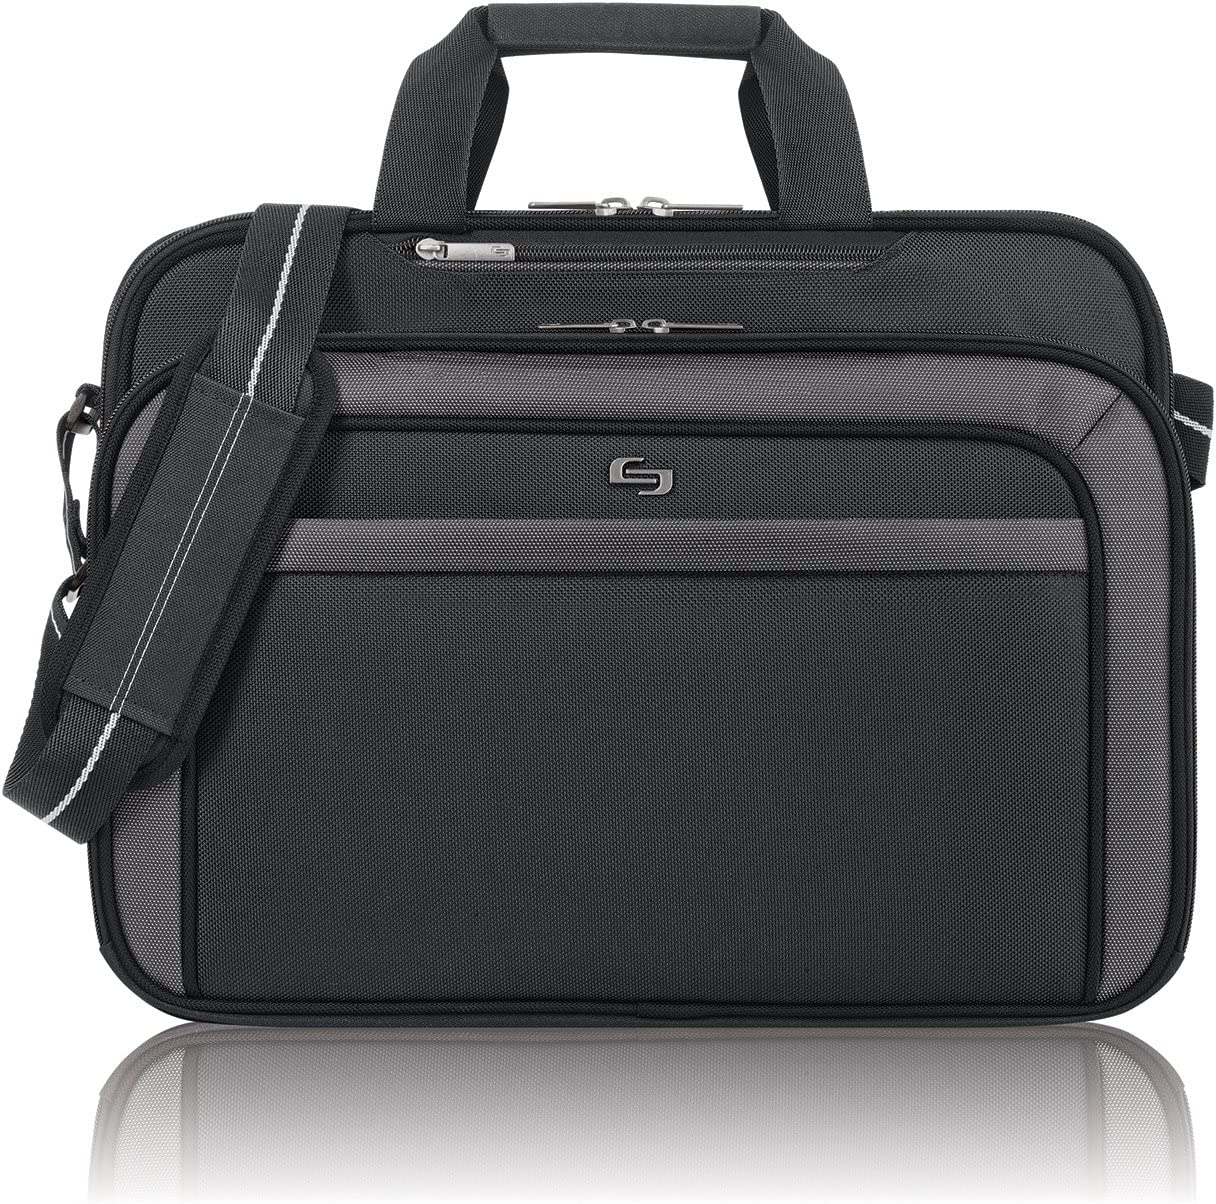 Solo Empire 17.3 Inch Laptop Briefcase, TSA Friendly, Black/Grey